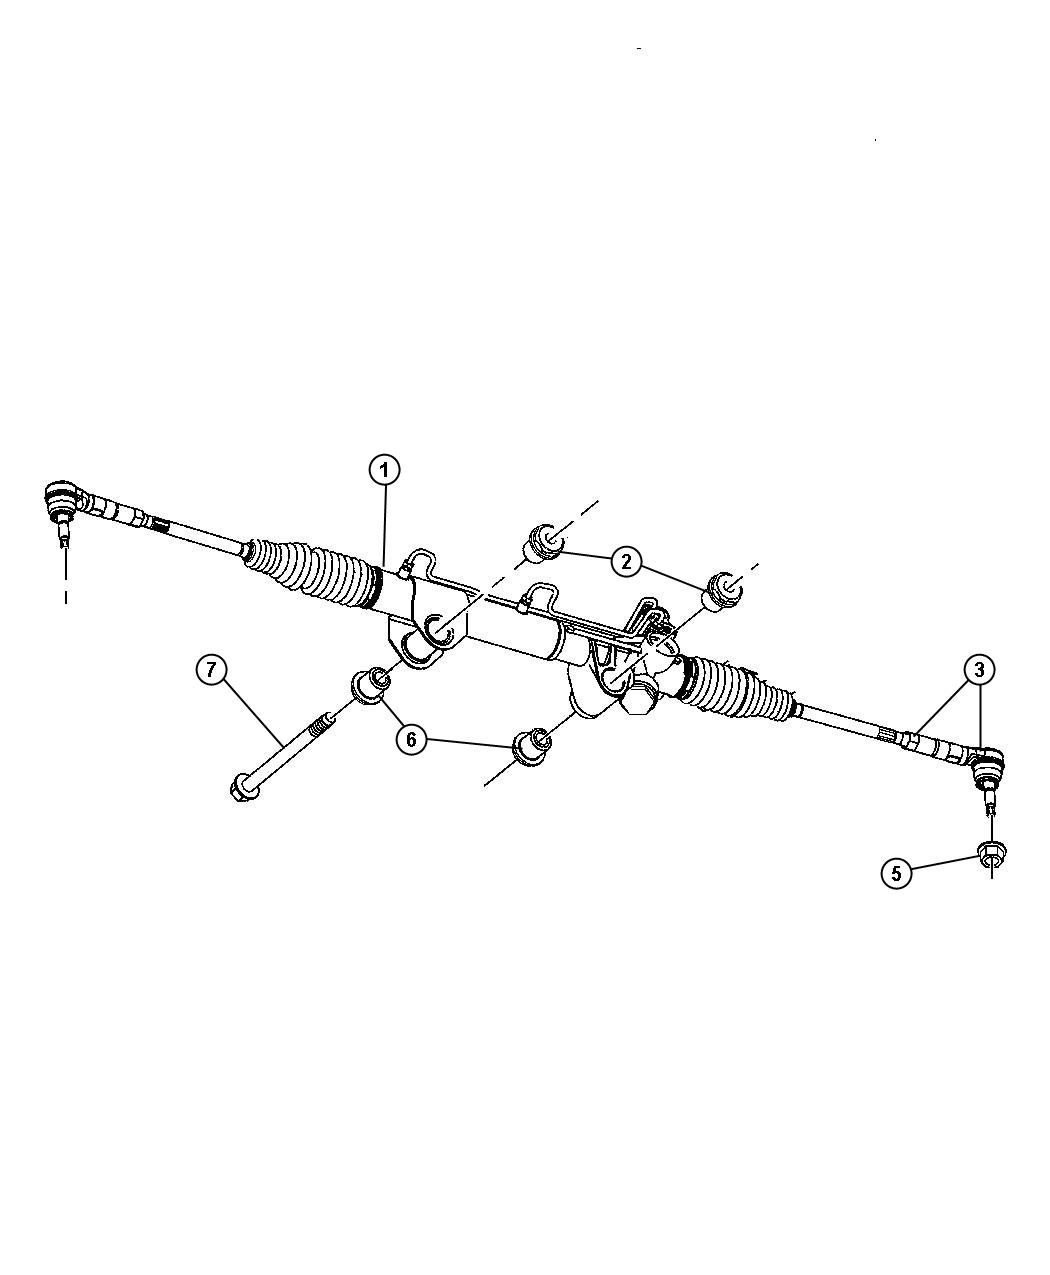 Dodge Ram Gear Used For Rack And Pinion